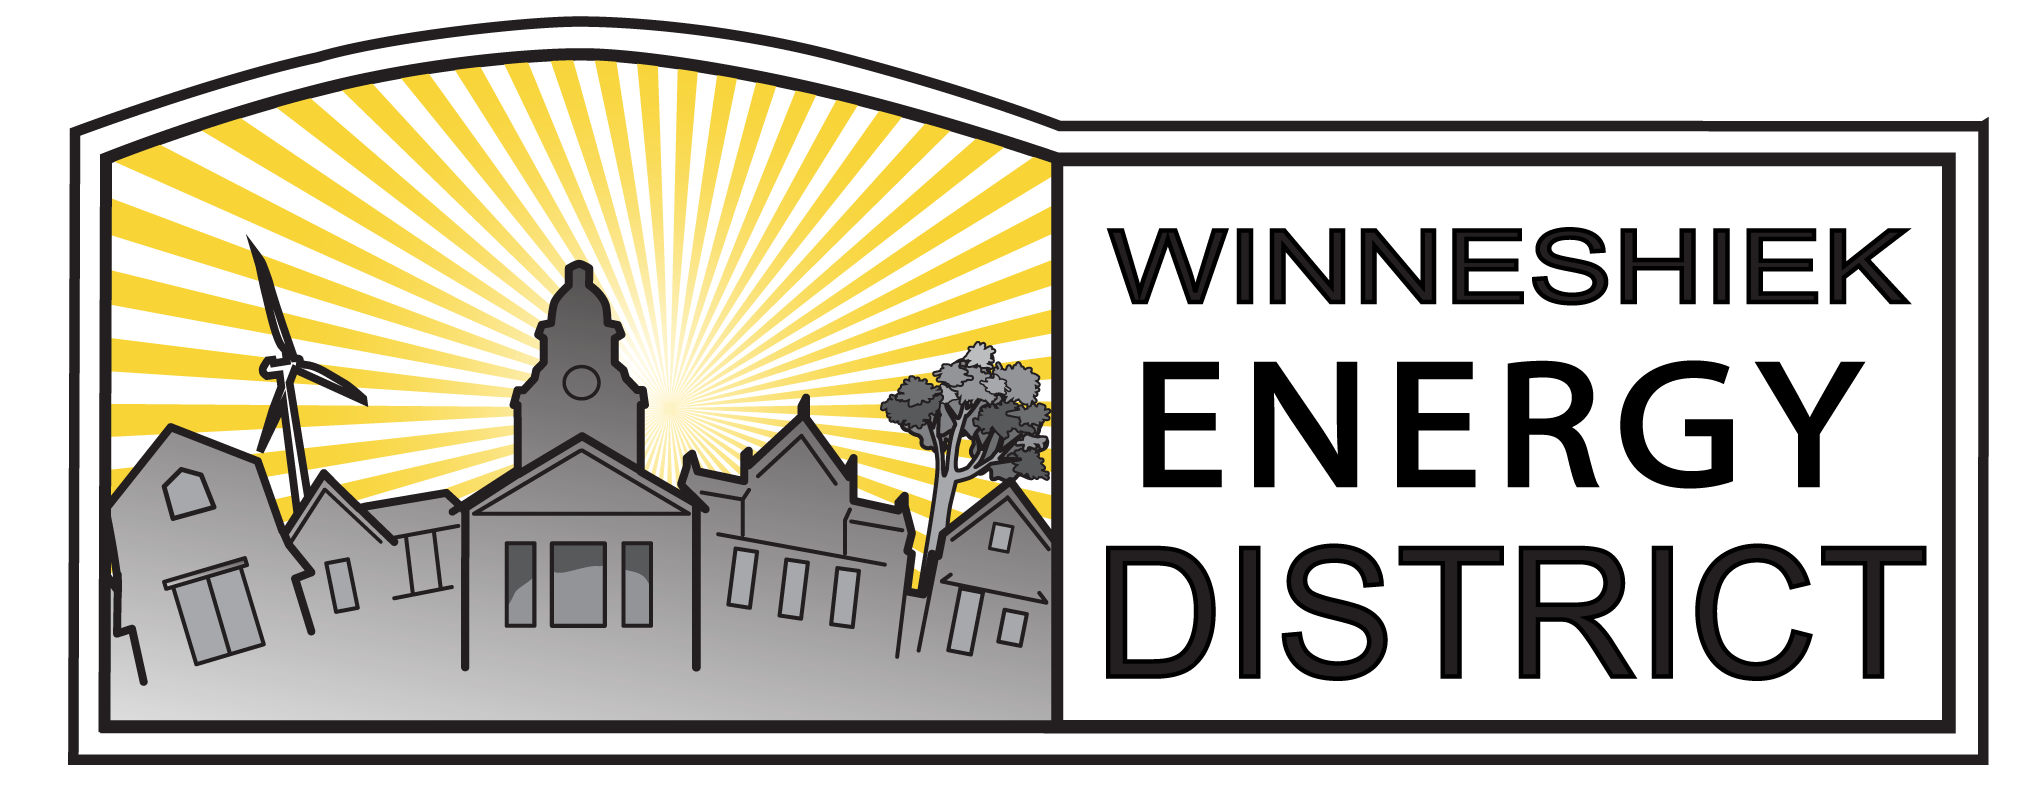 Winneshiek Energy District